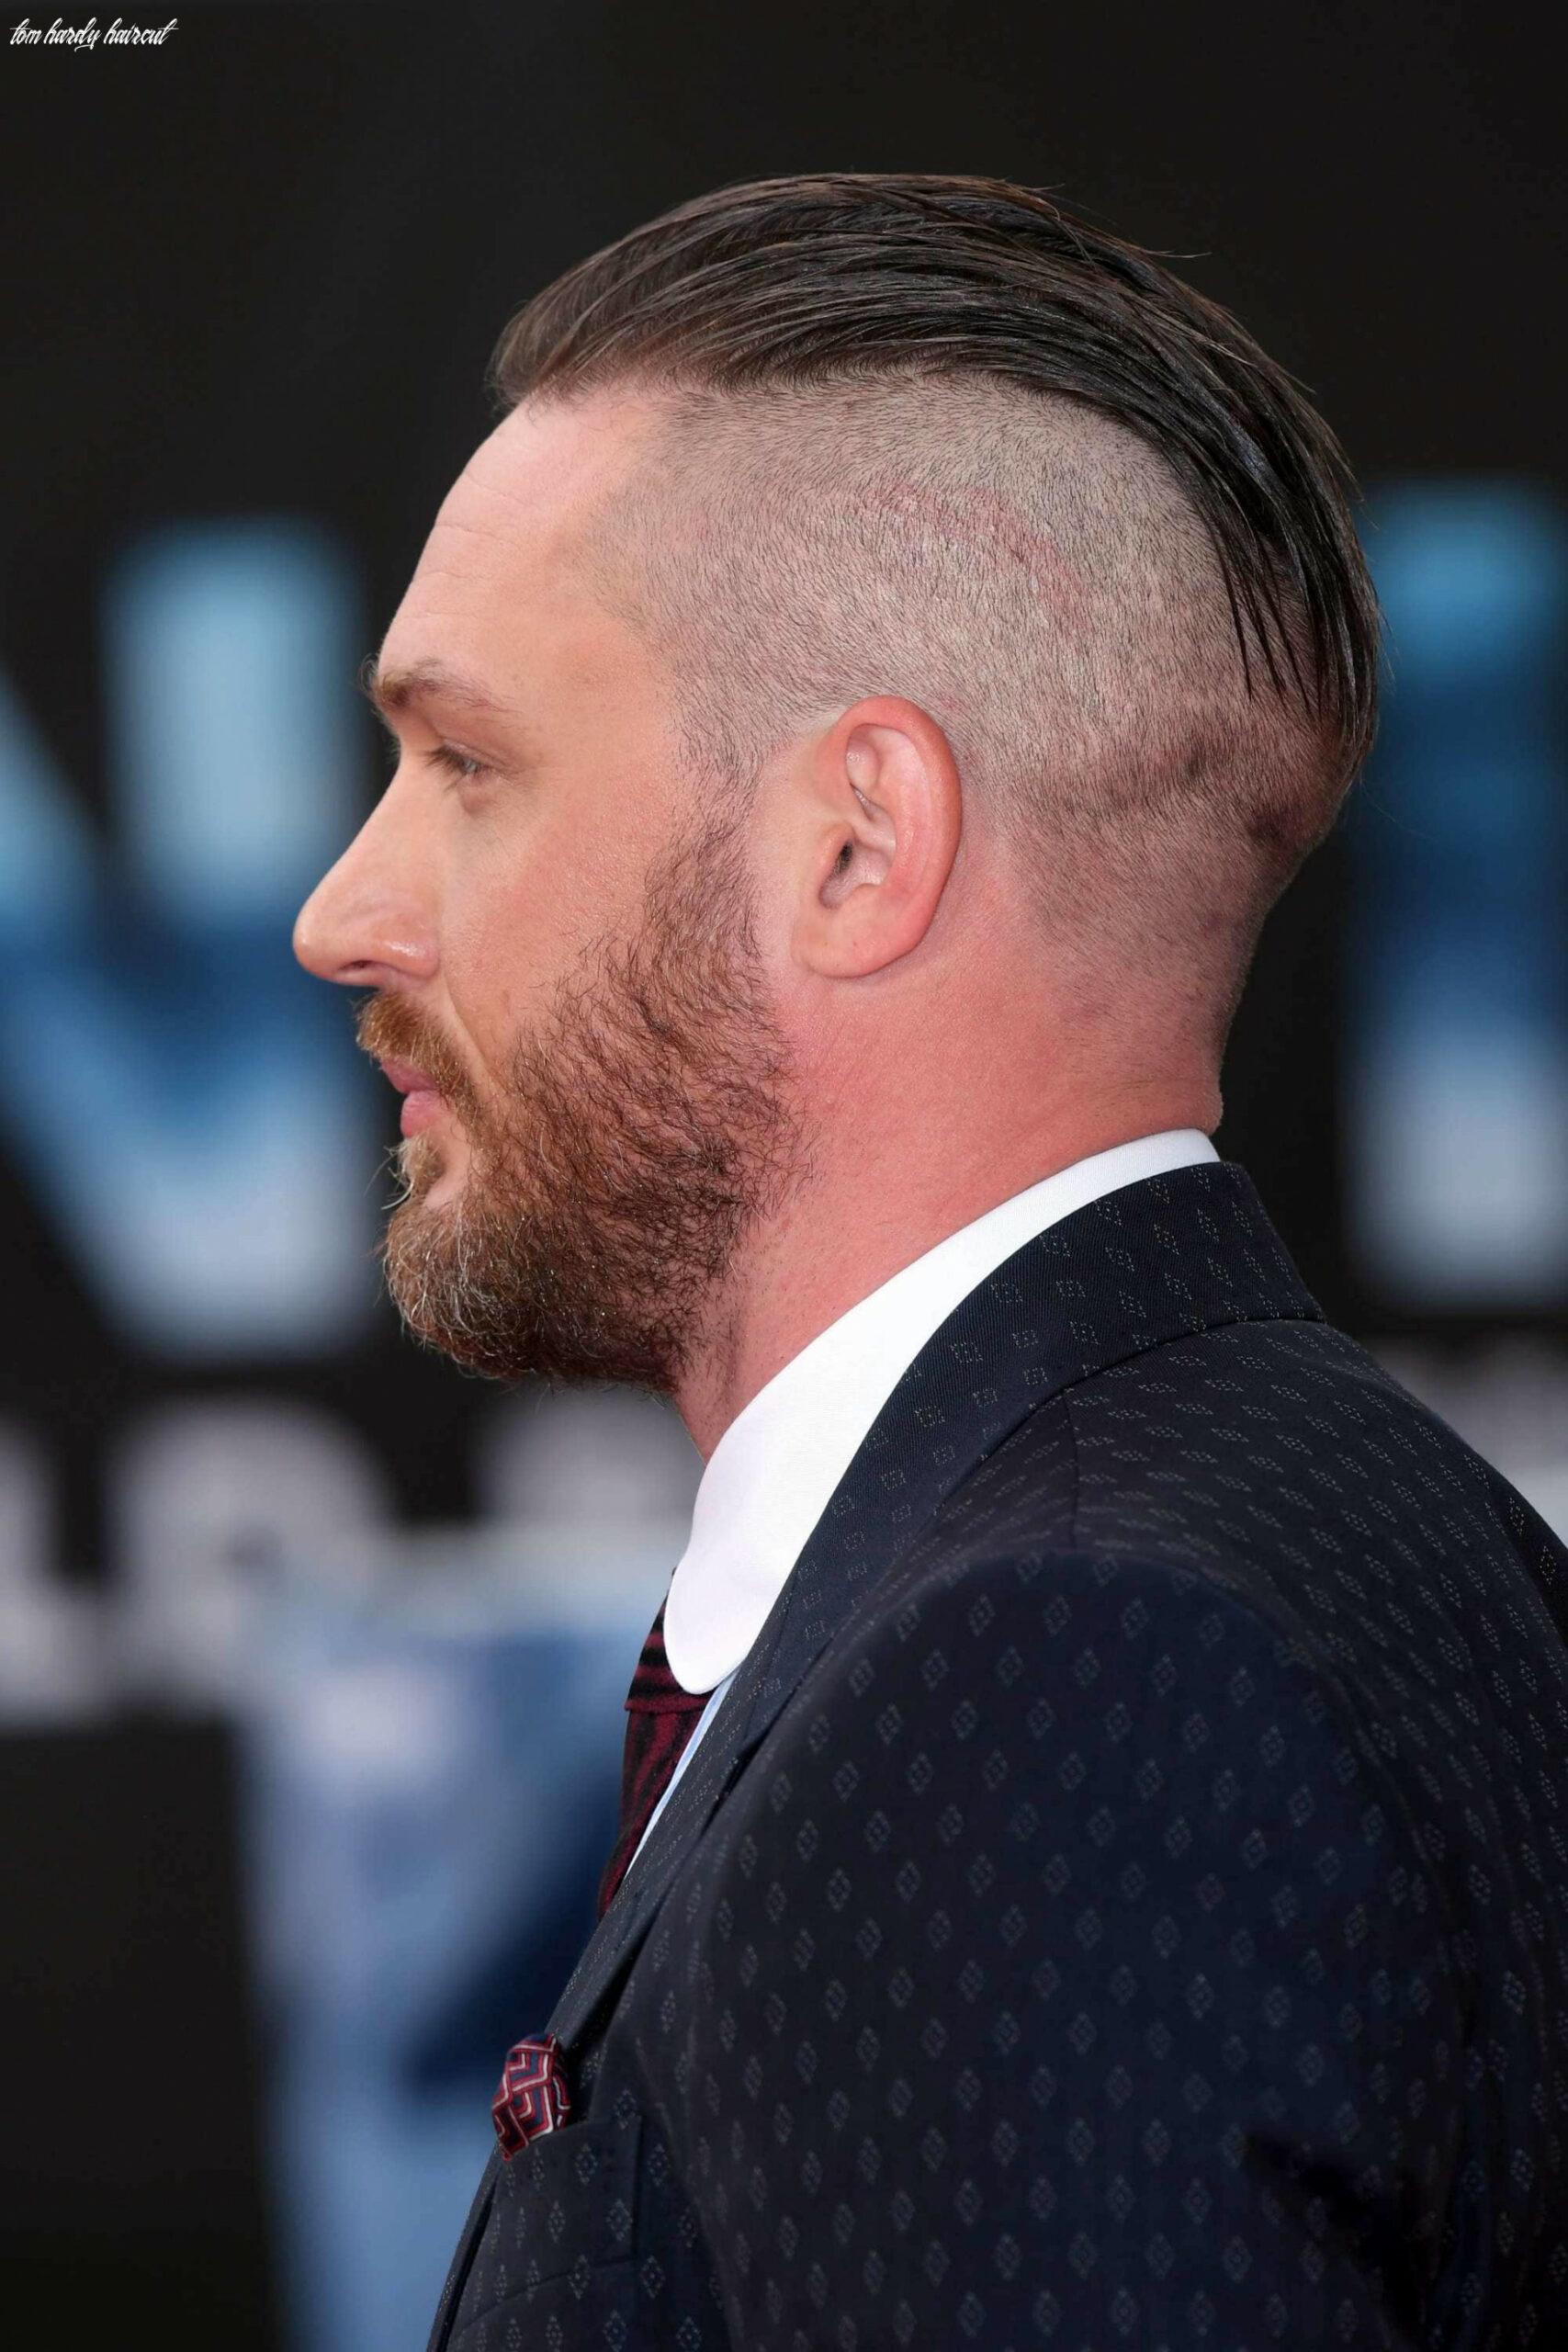 12 top risks of tom hardy hairstyle | tom hardy hairstyle